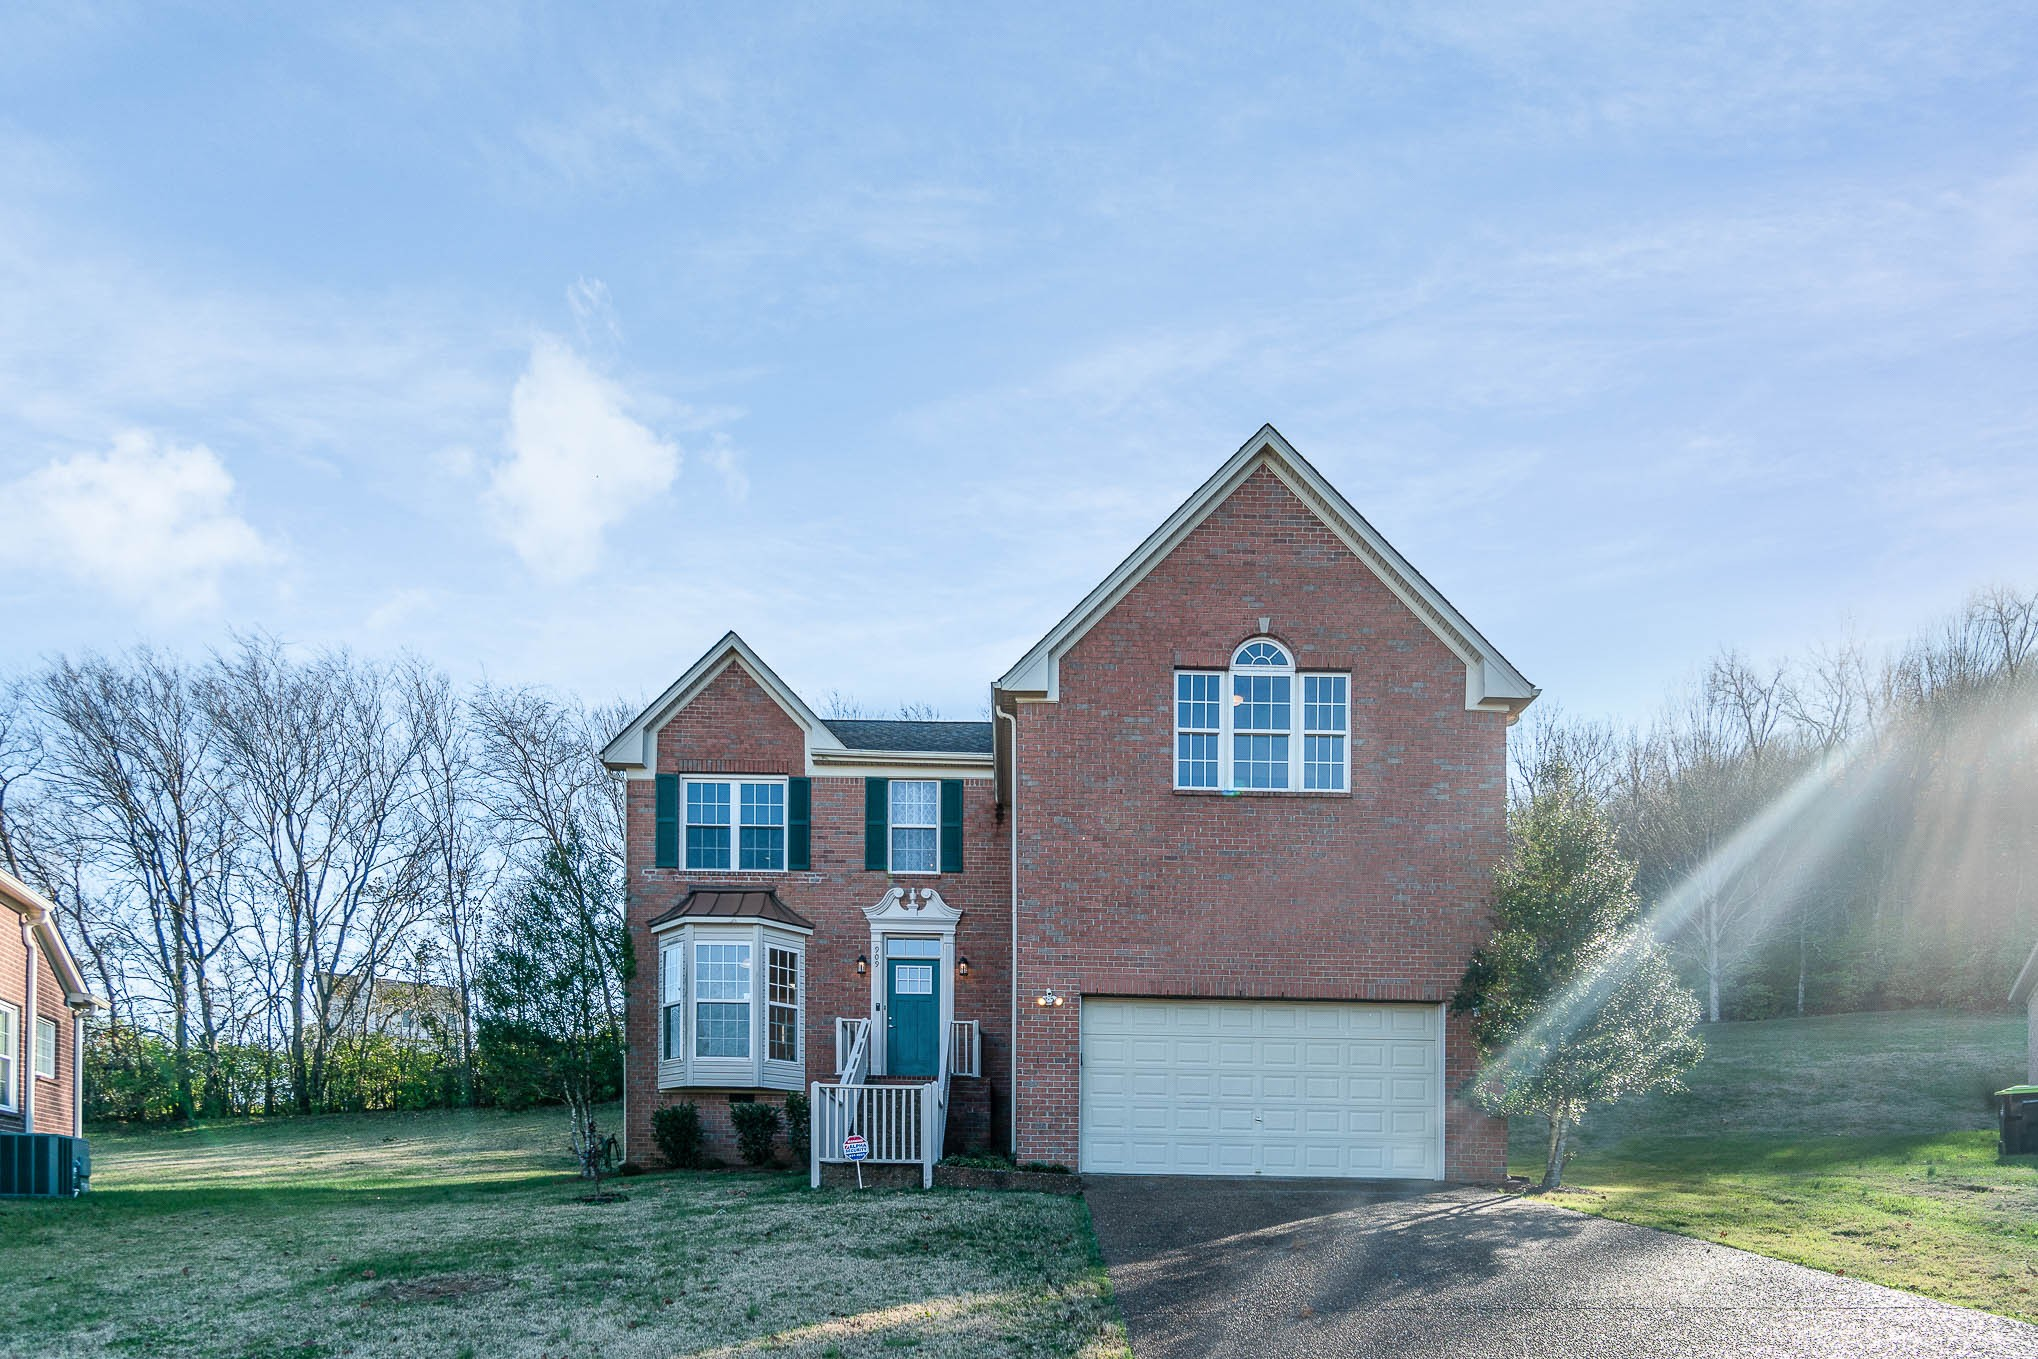 909 Canyon Ct Property Photo - Nashville, TN real estate listing